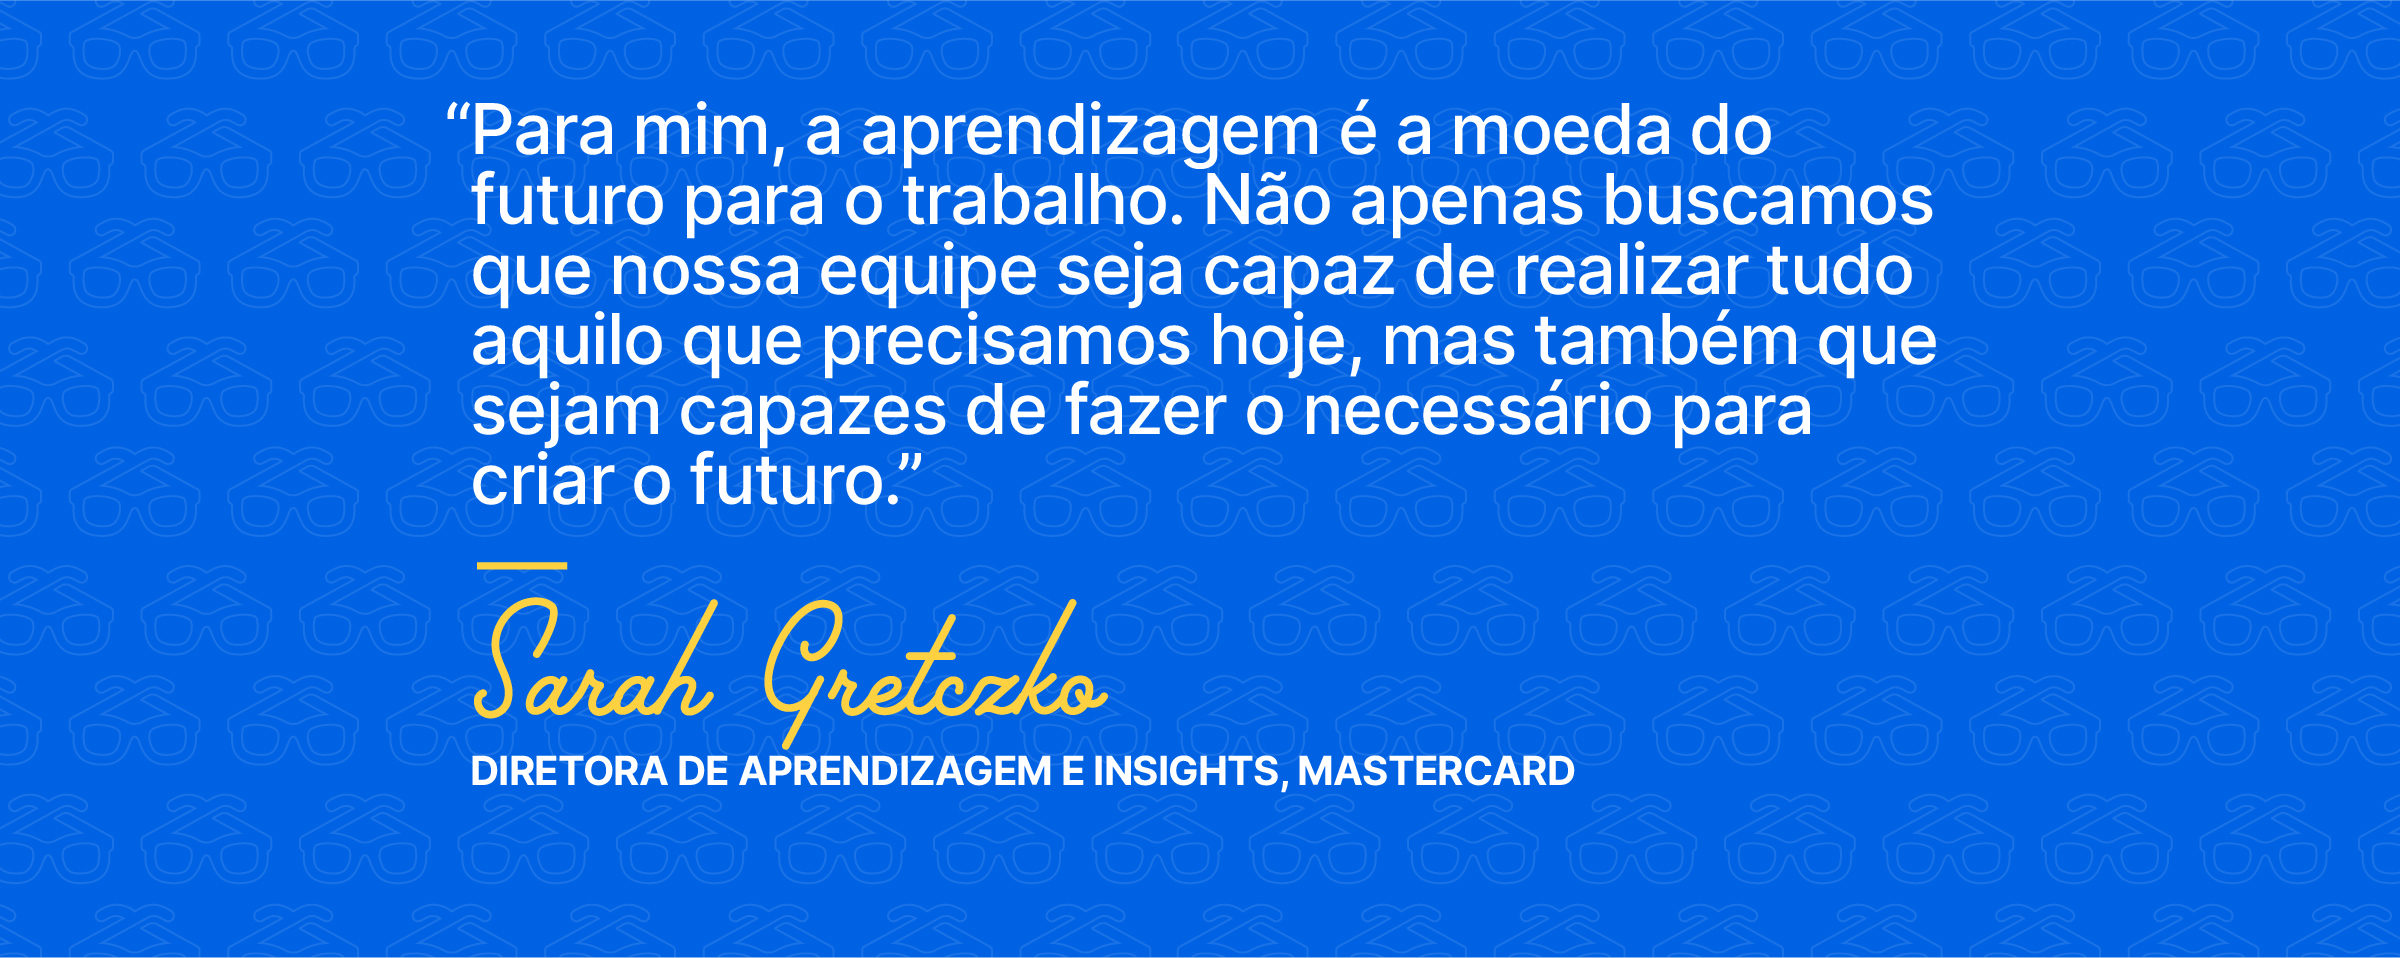 2020_LENS_Lite_Hubspot_Mastercard_ImageQuote_Portuguese@1x-1